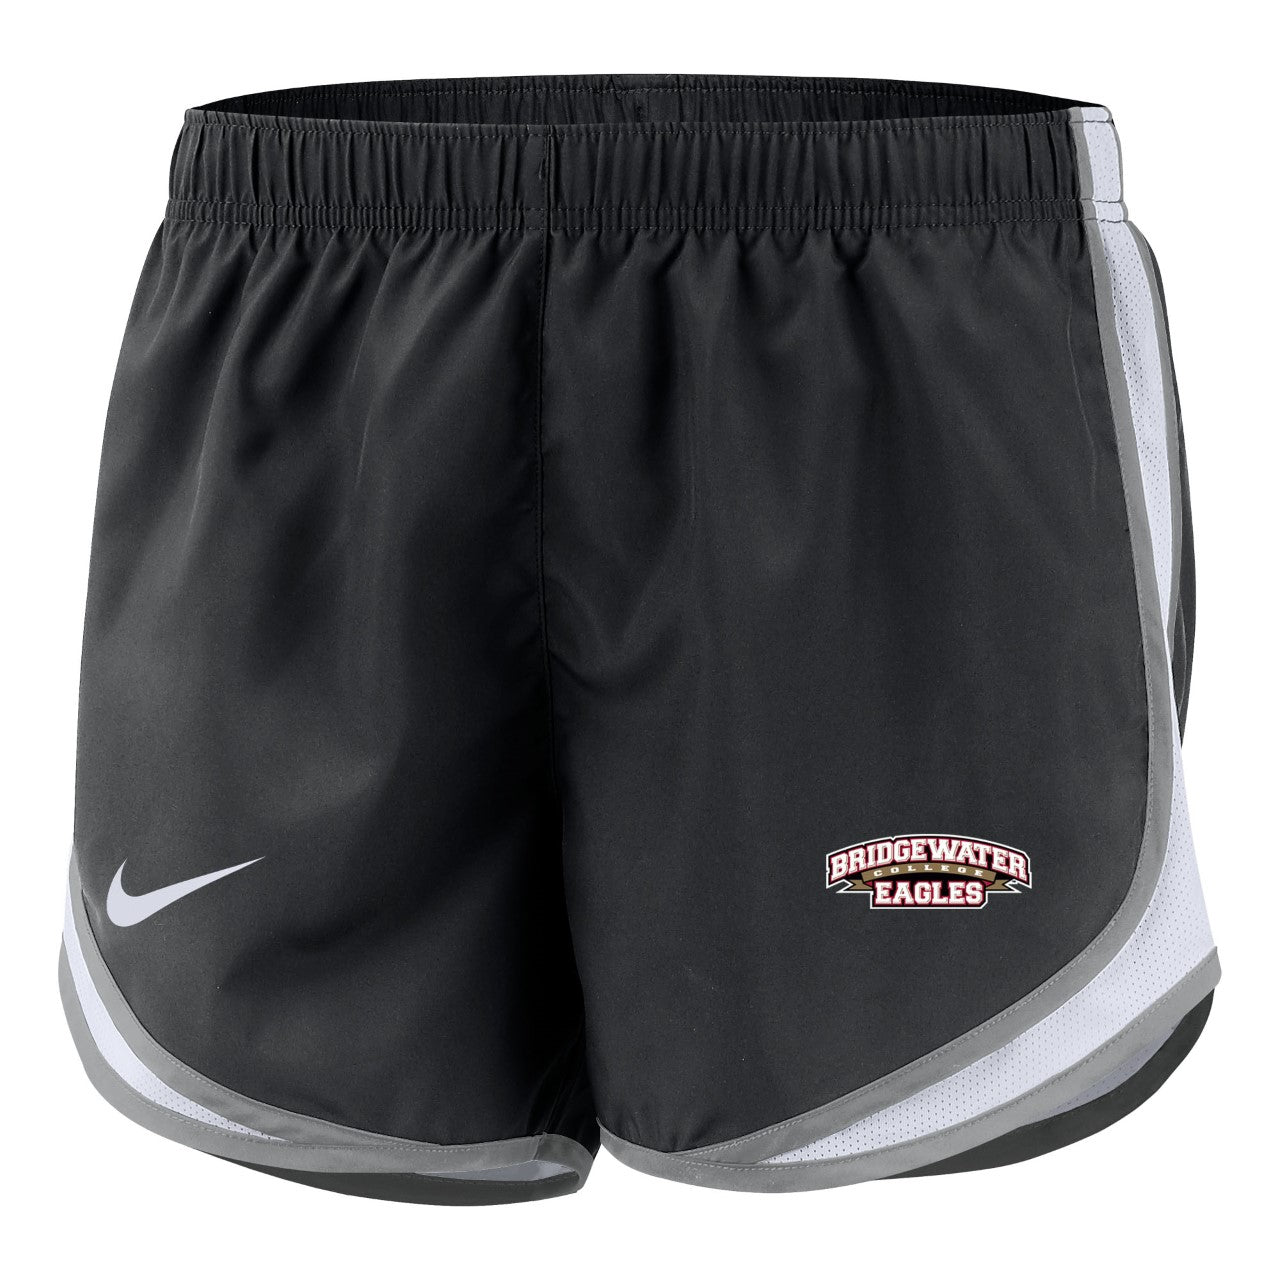 Bridgewater College Womens Black/Gray Nike Tempo Short